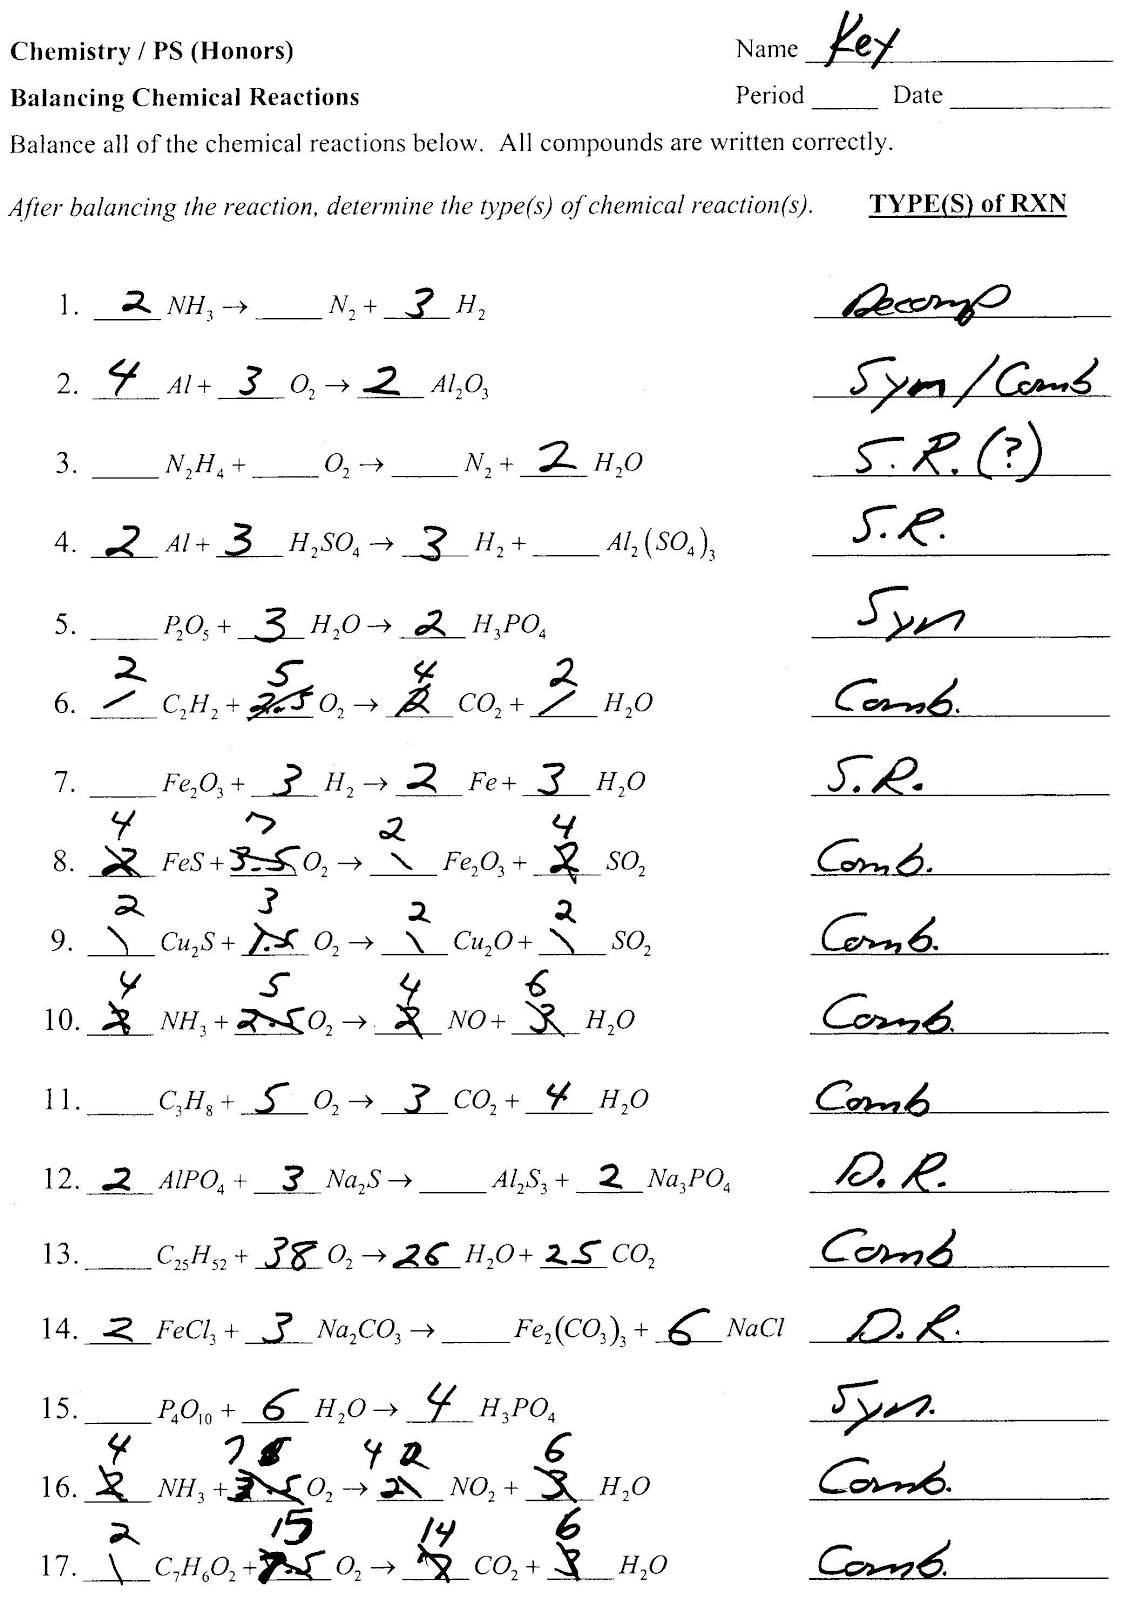 Mr Brueckners Chemistry Class HHS 201112 February 2012 – Activity Series Worksheet